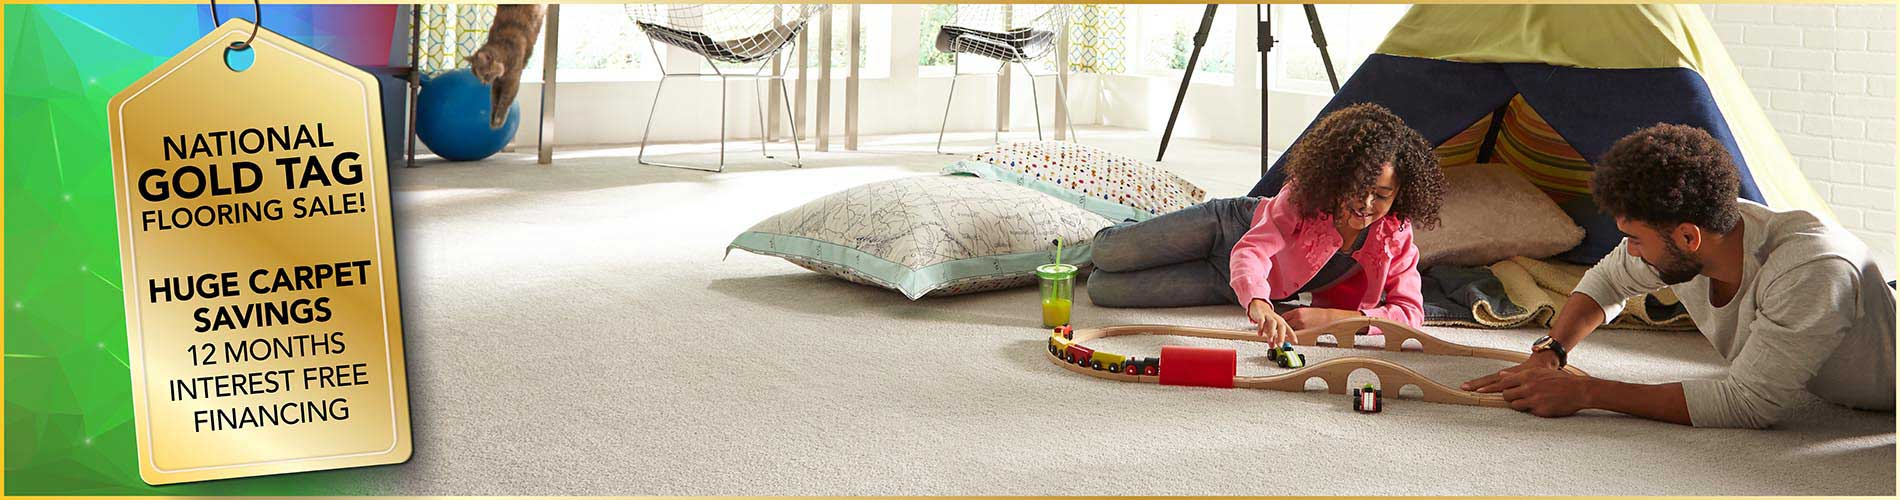 Get huge savings on carpet during our National Gold Tag Sale at Ultimate Flooring & Paint